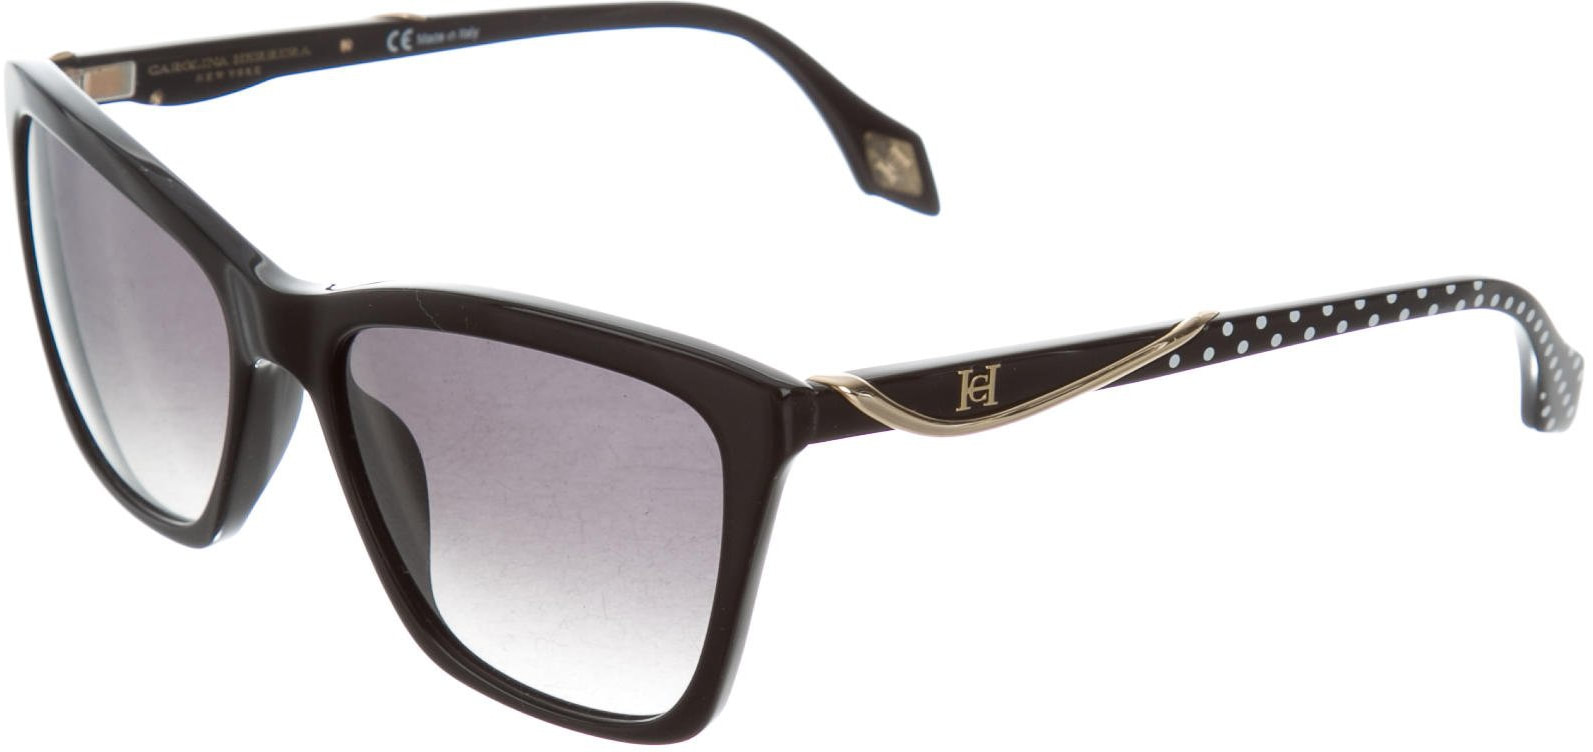 Carolina Herrera black polka dot sunglasses